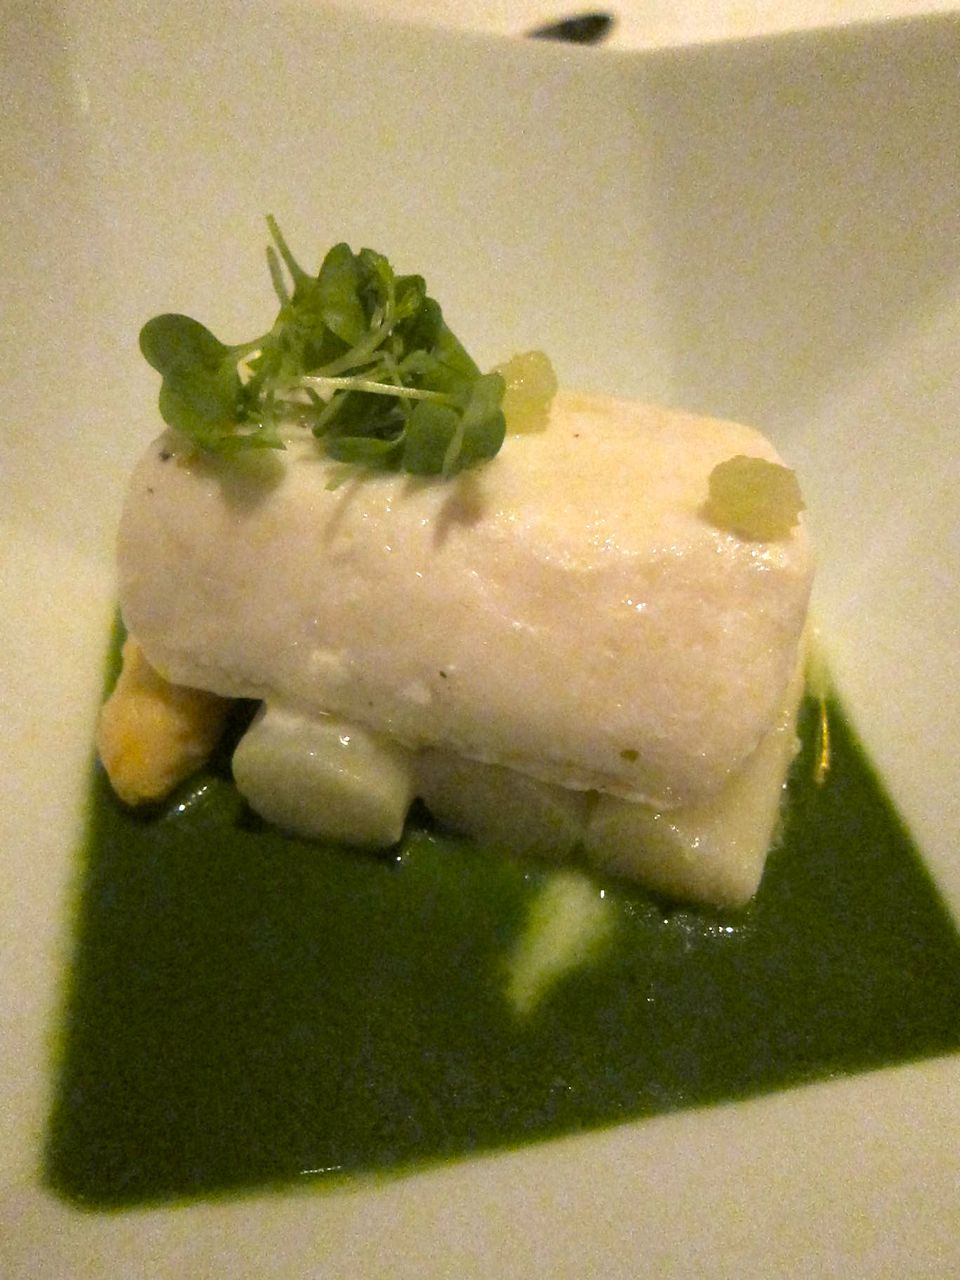 Jean-Georges' halibut in herbal lemongrass sauce disguised as a monument.